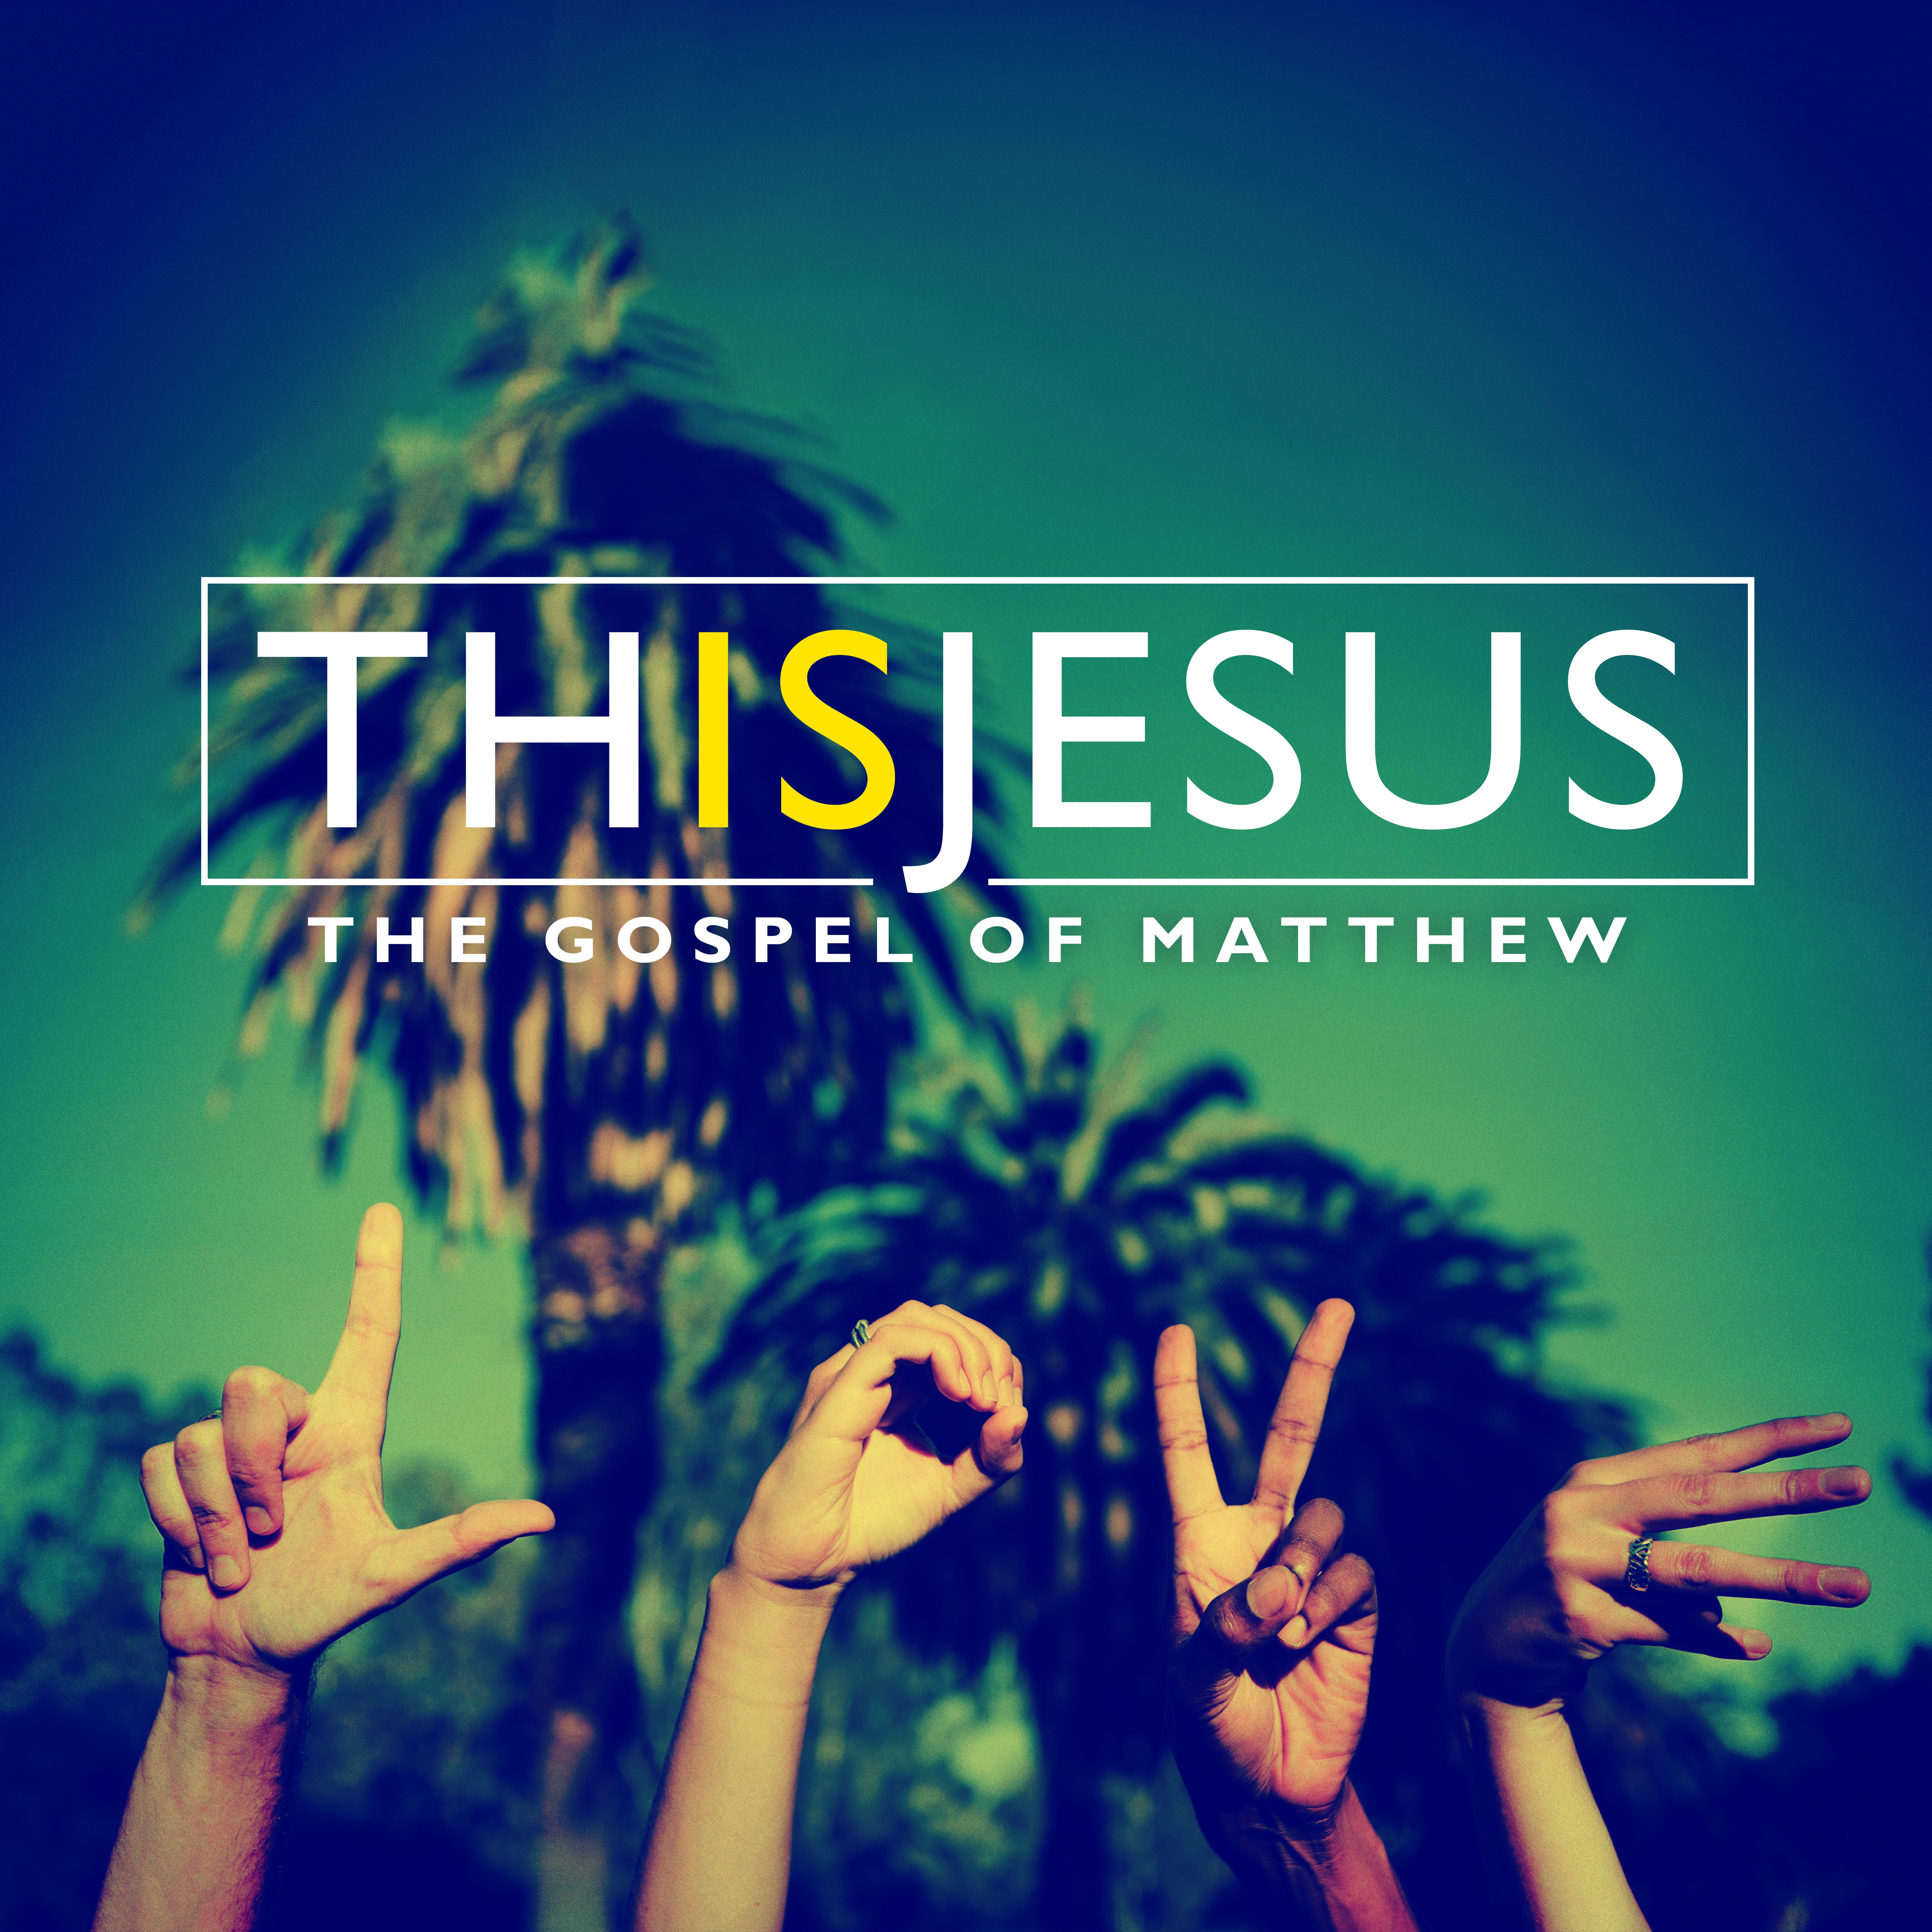 This is Jesus (Series Poster)